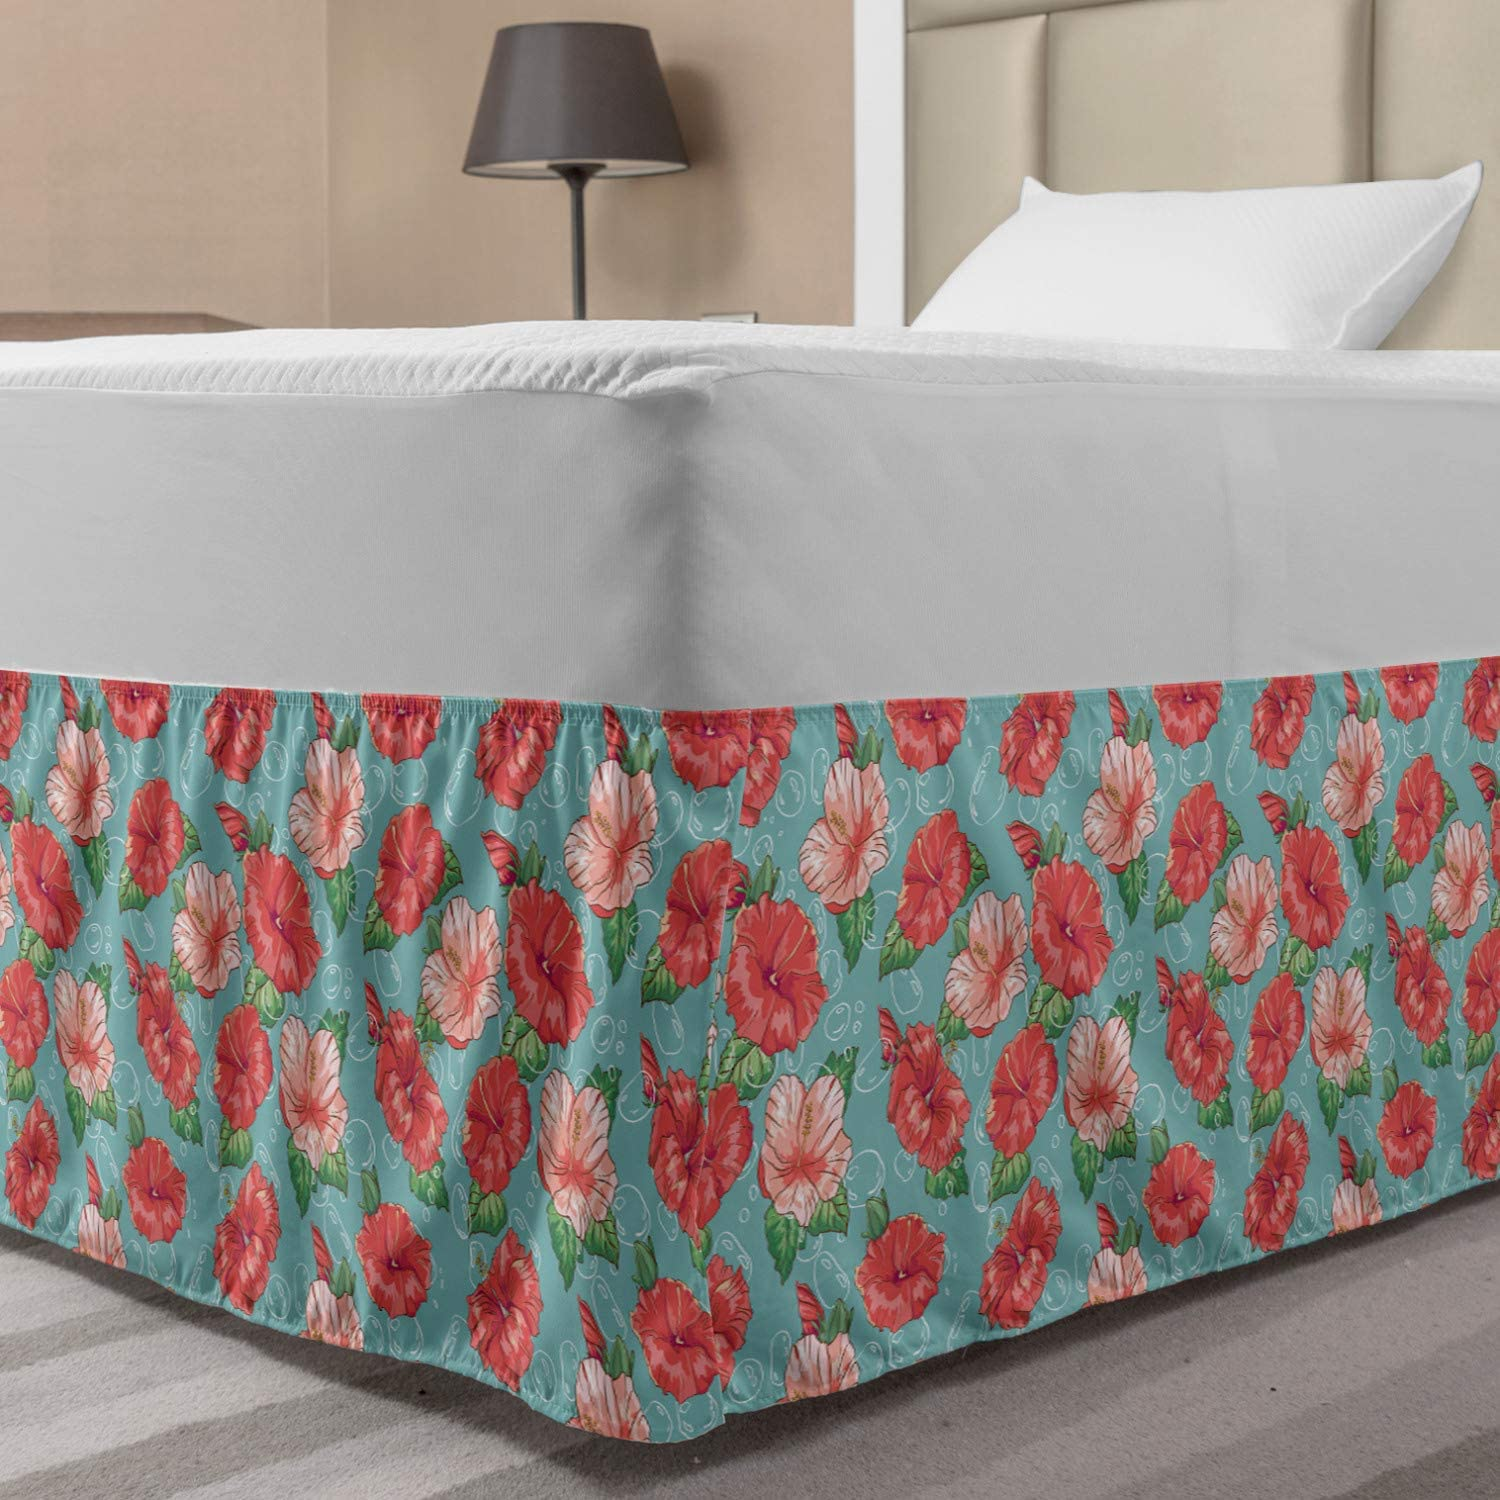 Ambesonne Hibiscus Bed Skirt, Pattern of Tropic Flowers and Bubbles Graphic, Elastic Bedskirt Dust Ruffle Wrap Around for Bedding Decor, Full, Teal Coral